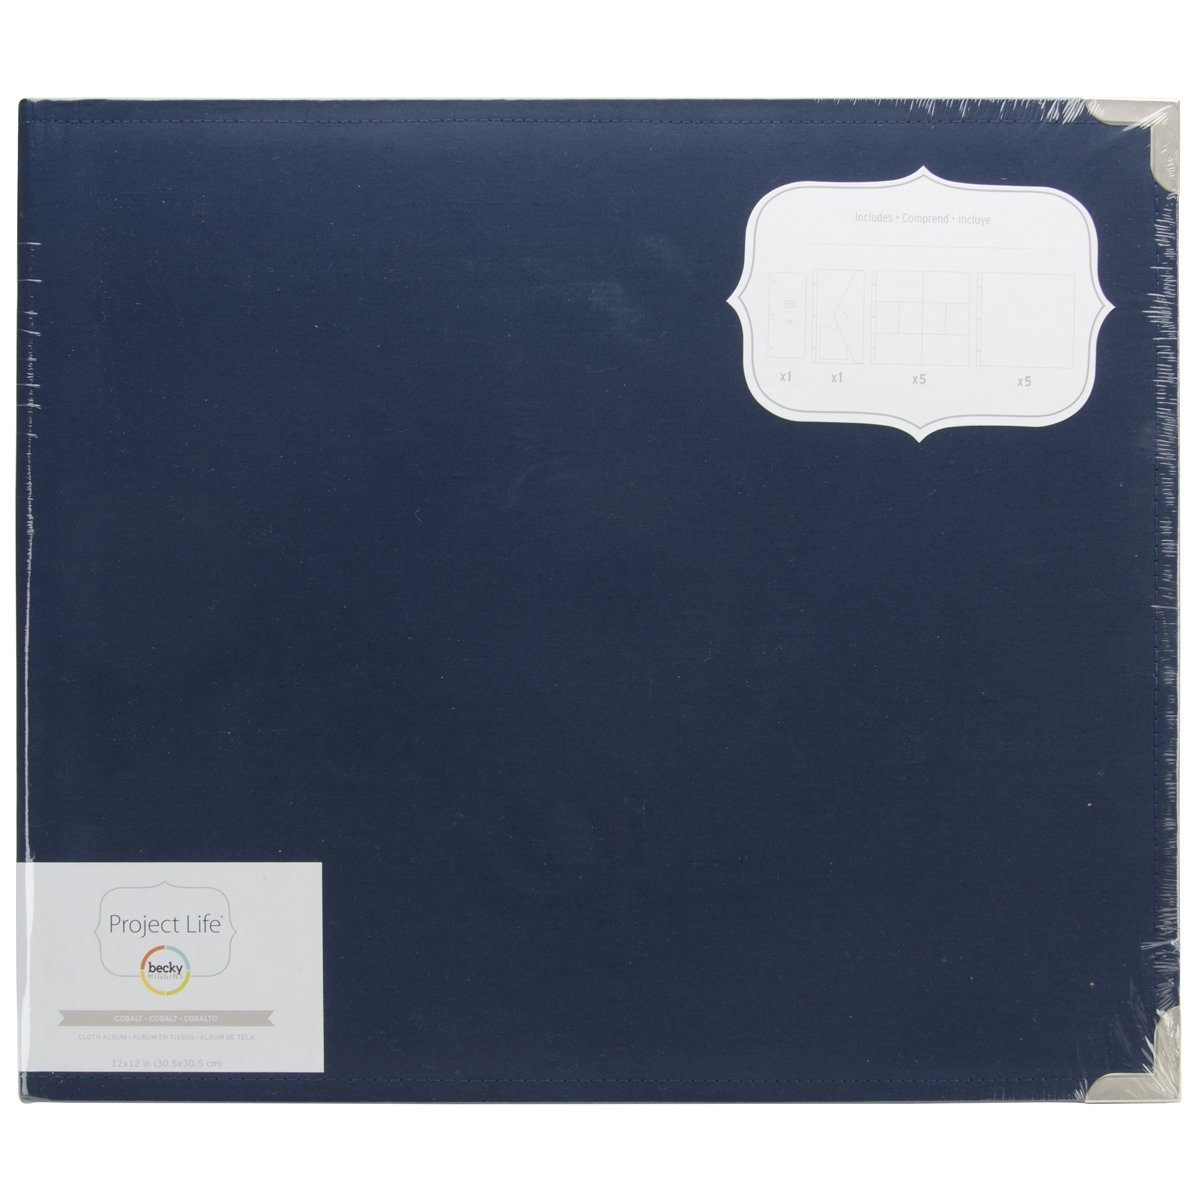 American Crafts Project Life Cloth D-Ring album,, 37.84 x 33.27 x 7.11 cm 380196